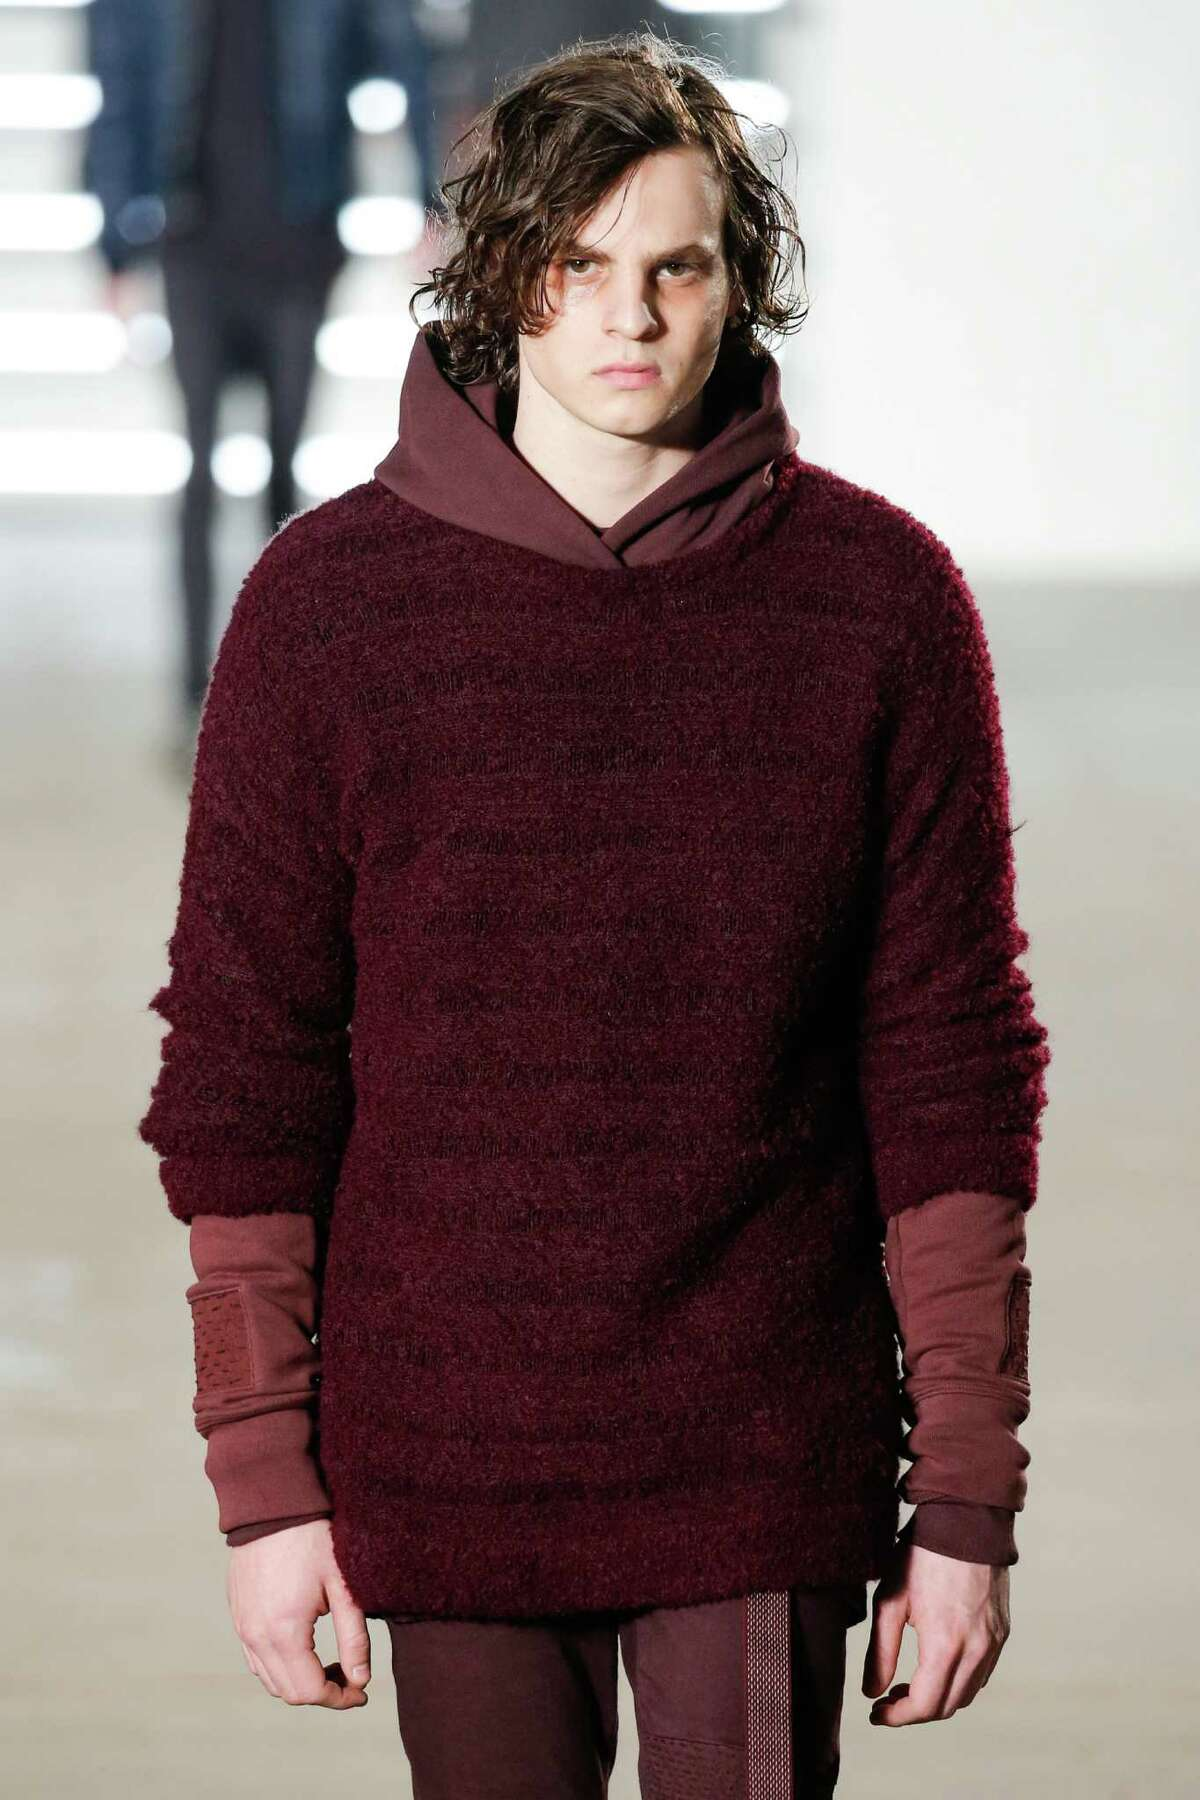 This man, one of the angriest male models we've ever seen, was one of hundreds who hit the runways this week for New York Fashion Week. Take a look at all the outfits we know your husband is never going to wear.